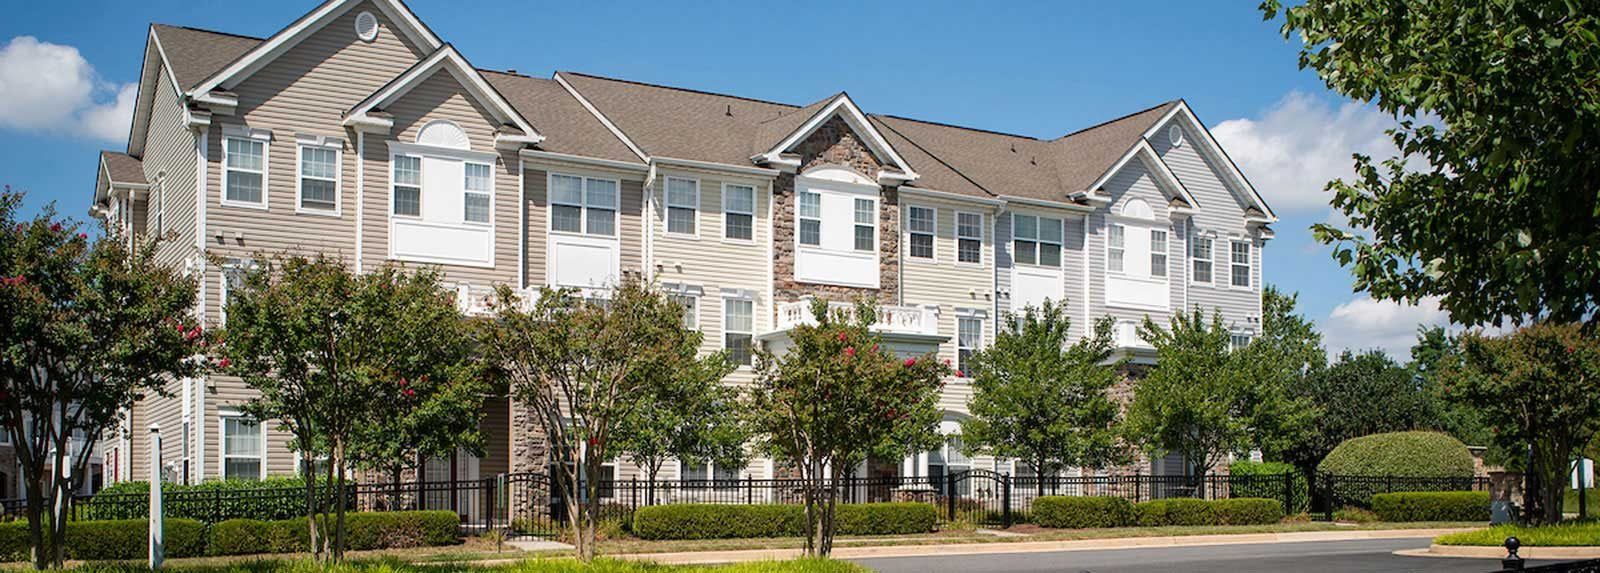 Building exterior of Broadlands, apartments in Virginia